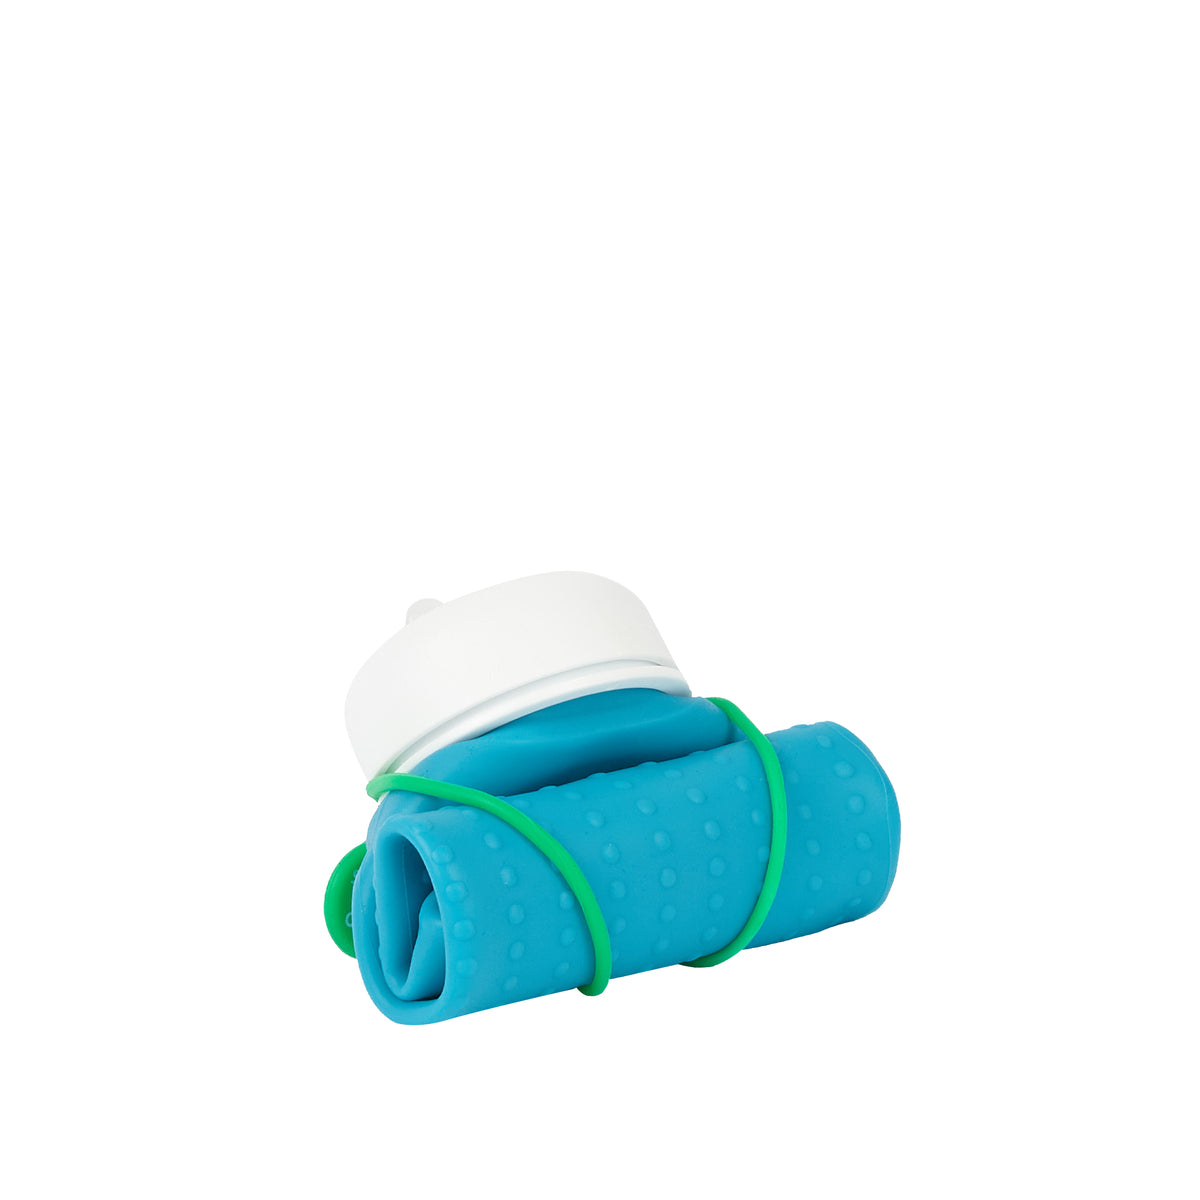 Rolla Bottle - Aqua, White Lid + Green Strap - rolled